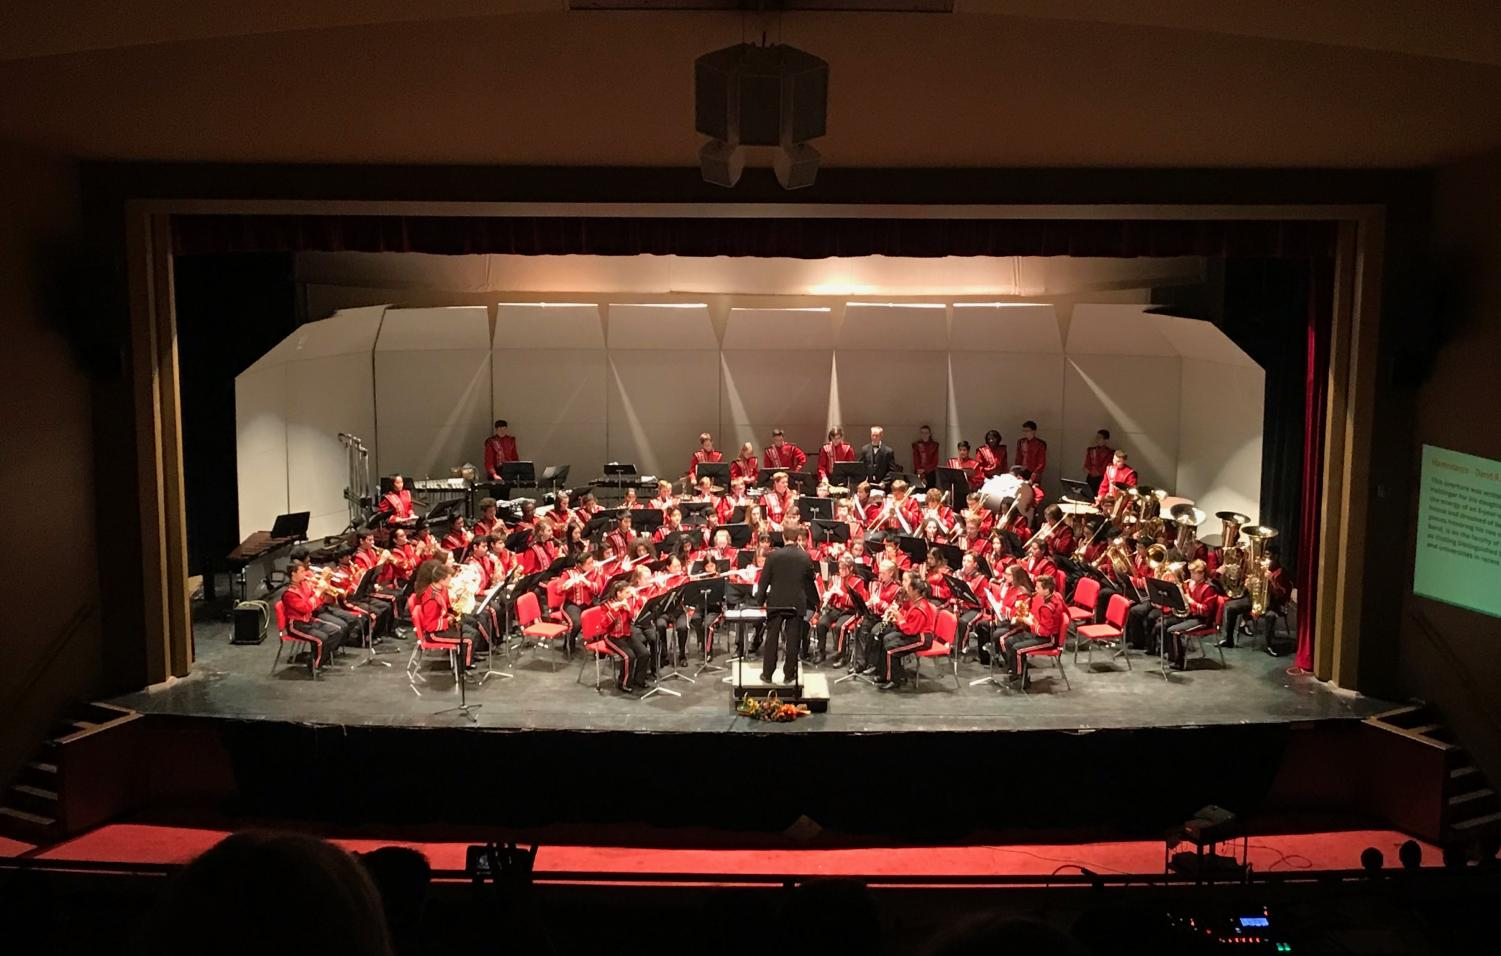 On Thursday, May 3, band students kicked off a month full of performances with two spring band concerts at 6:30 p.m. and 8 p.m. Out of all of band's six performances this May, the spring concerts were the last performances in a professional, concert-hall-like venue in the auditorium.